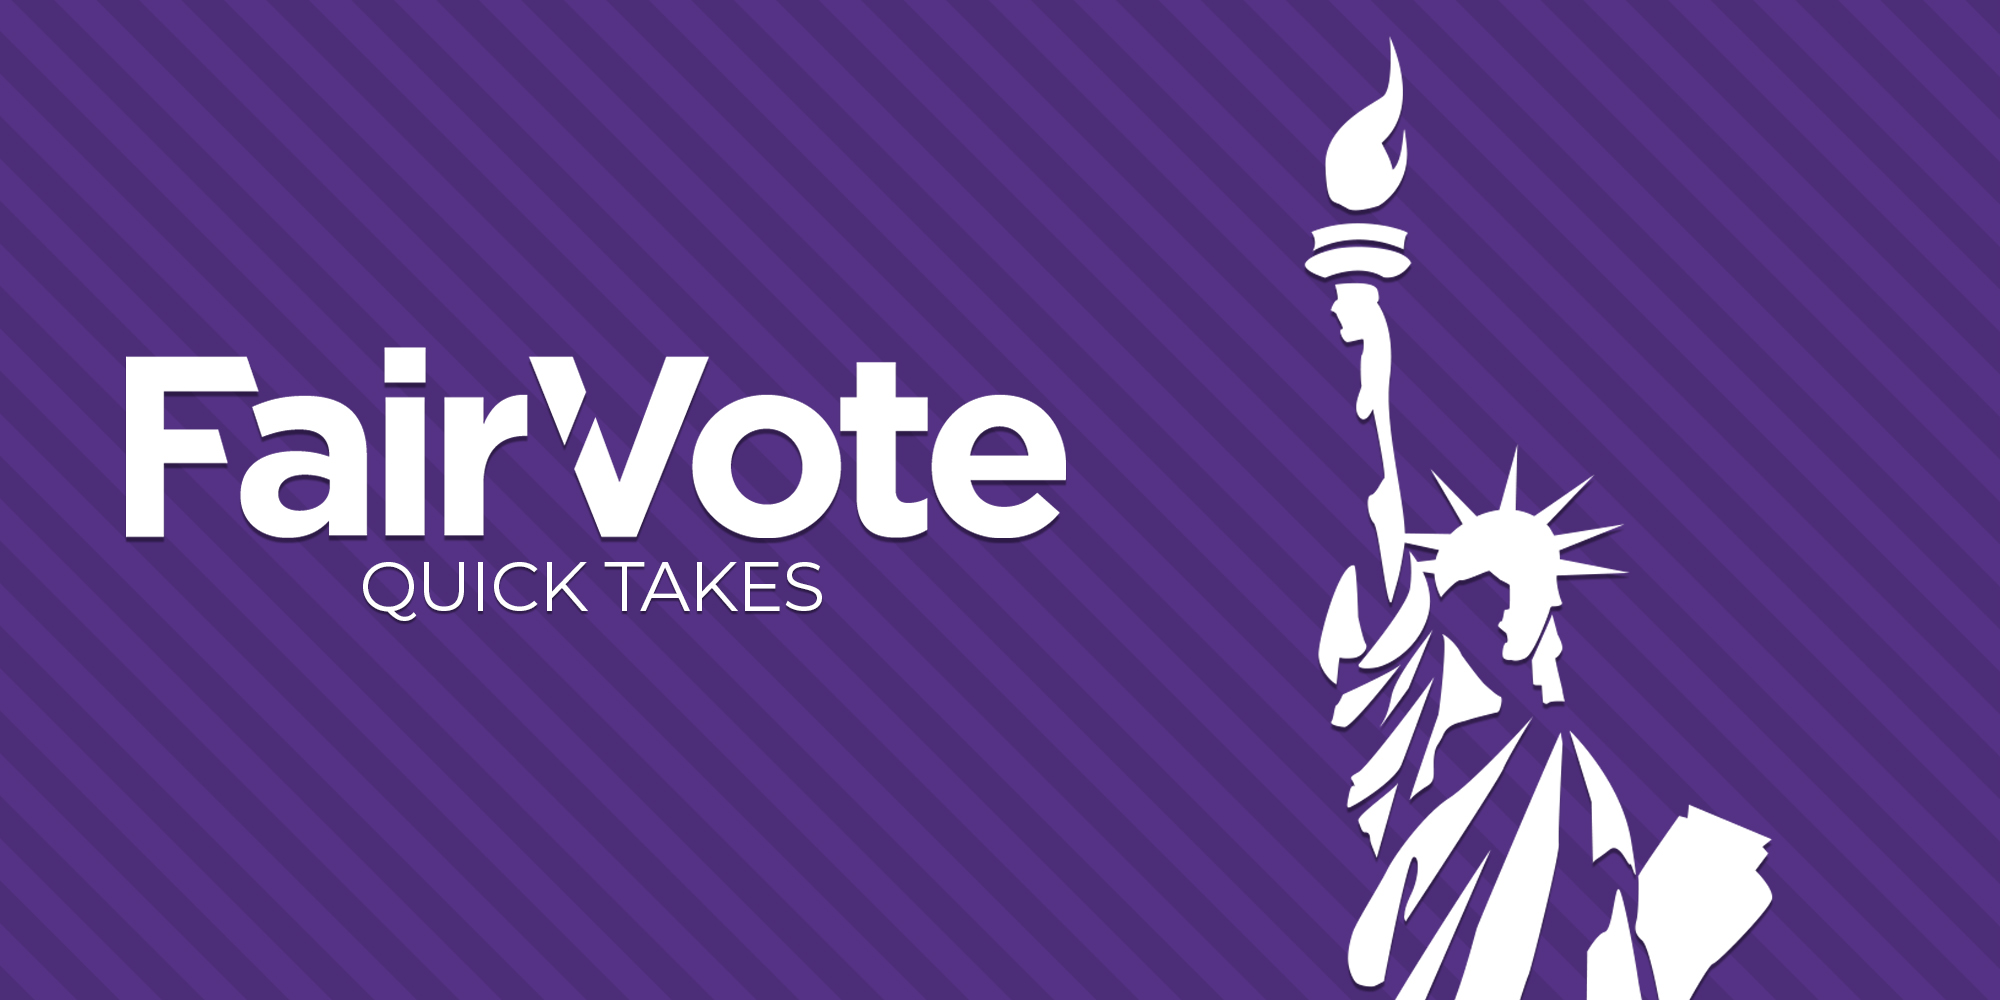 Bringing Ranked Choice Voting to New York City